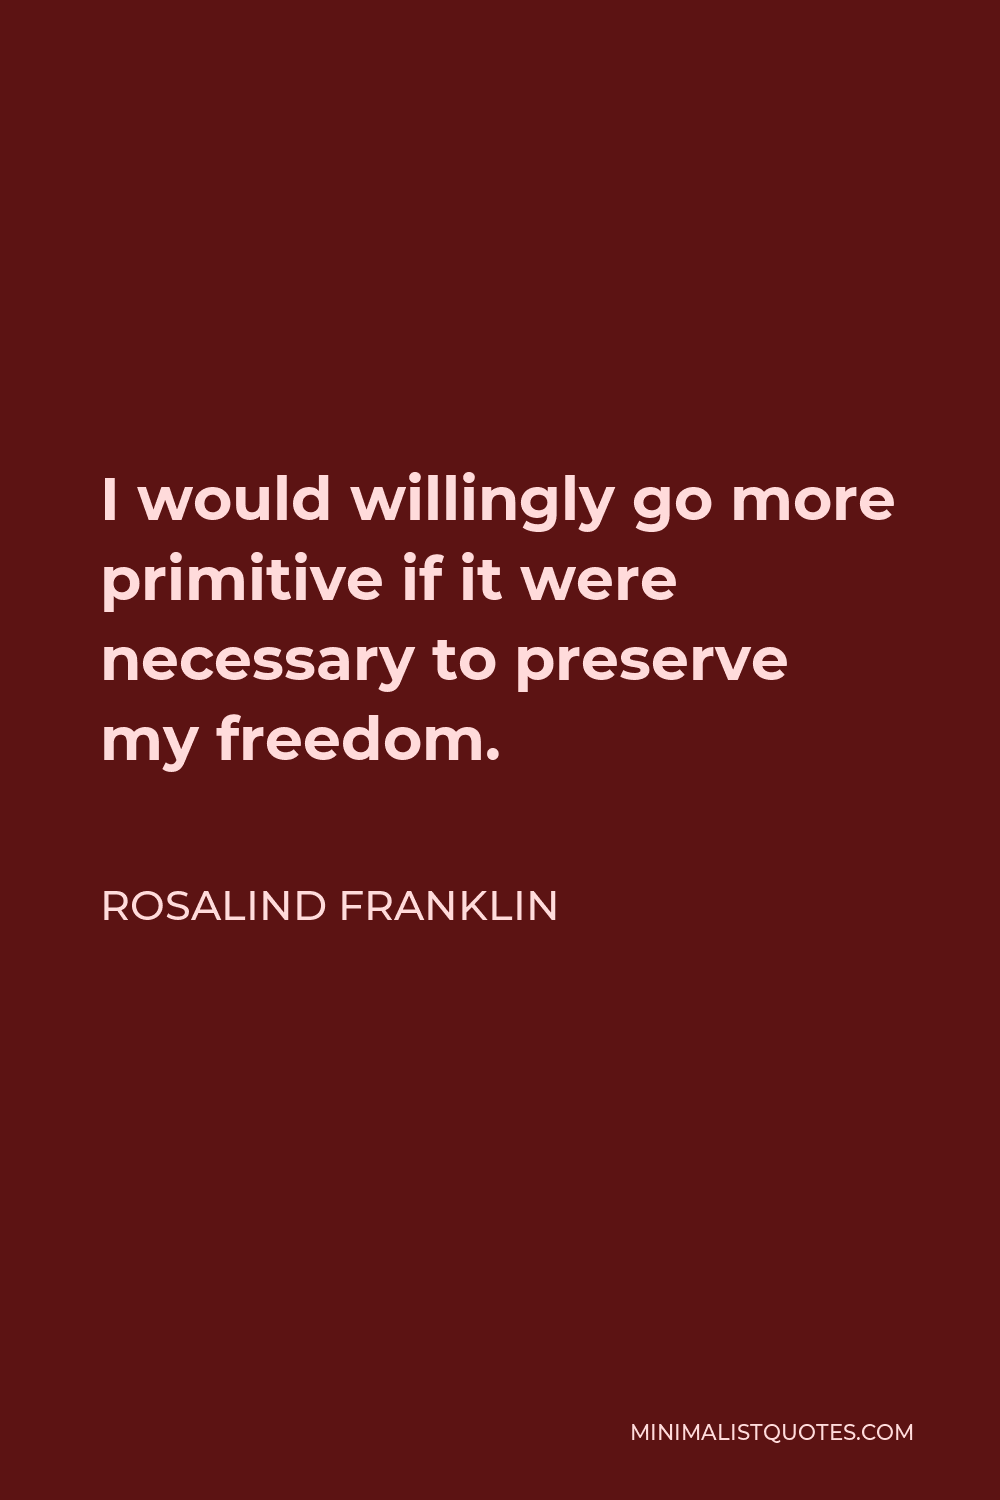 Rosalind Franklin Quote - I would willingly go more primitive if it were necessary to preserve my freedom.